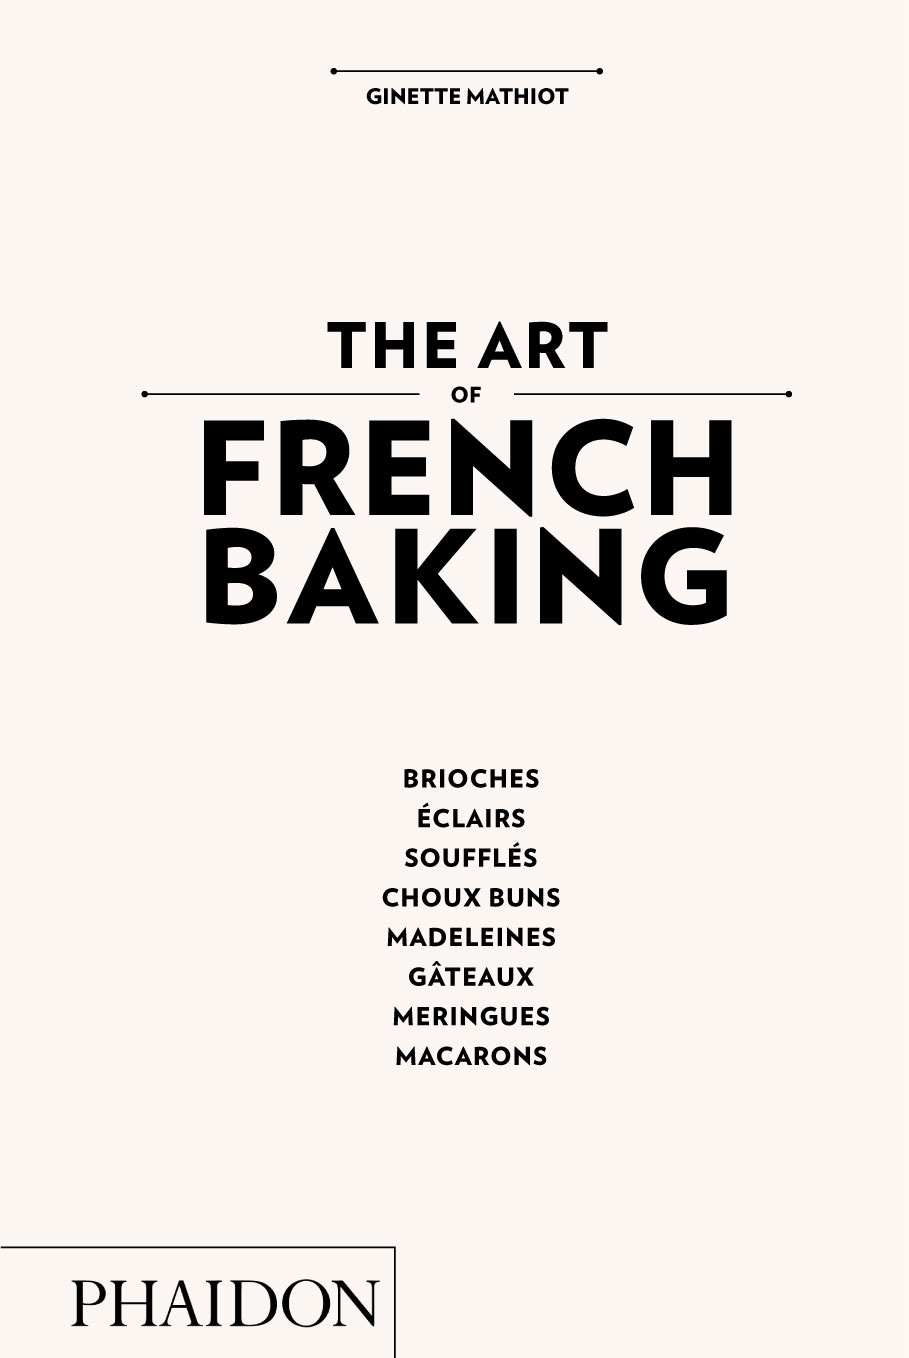 The-Art-of-French-Baking-no-white.jpg